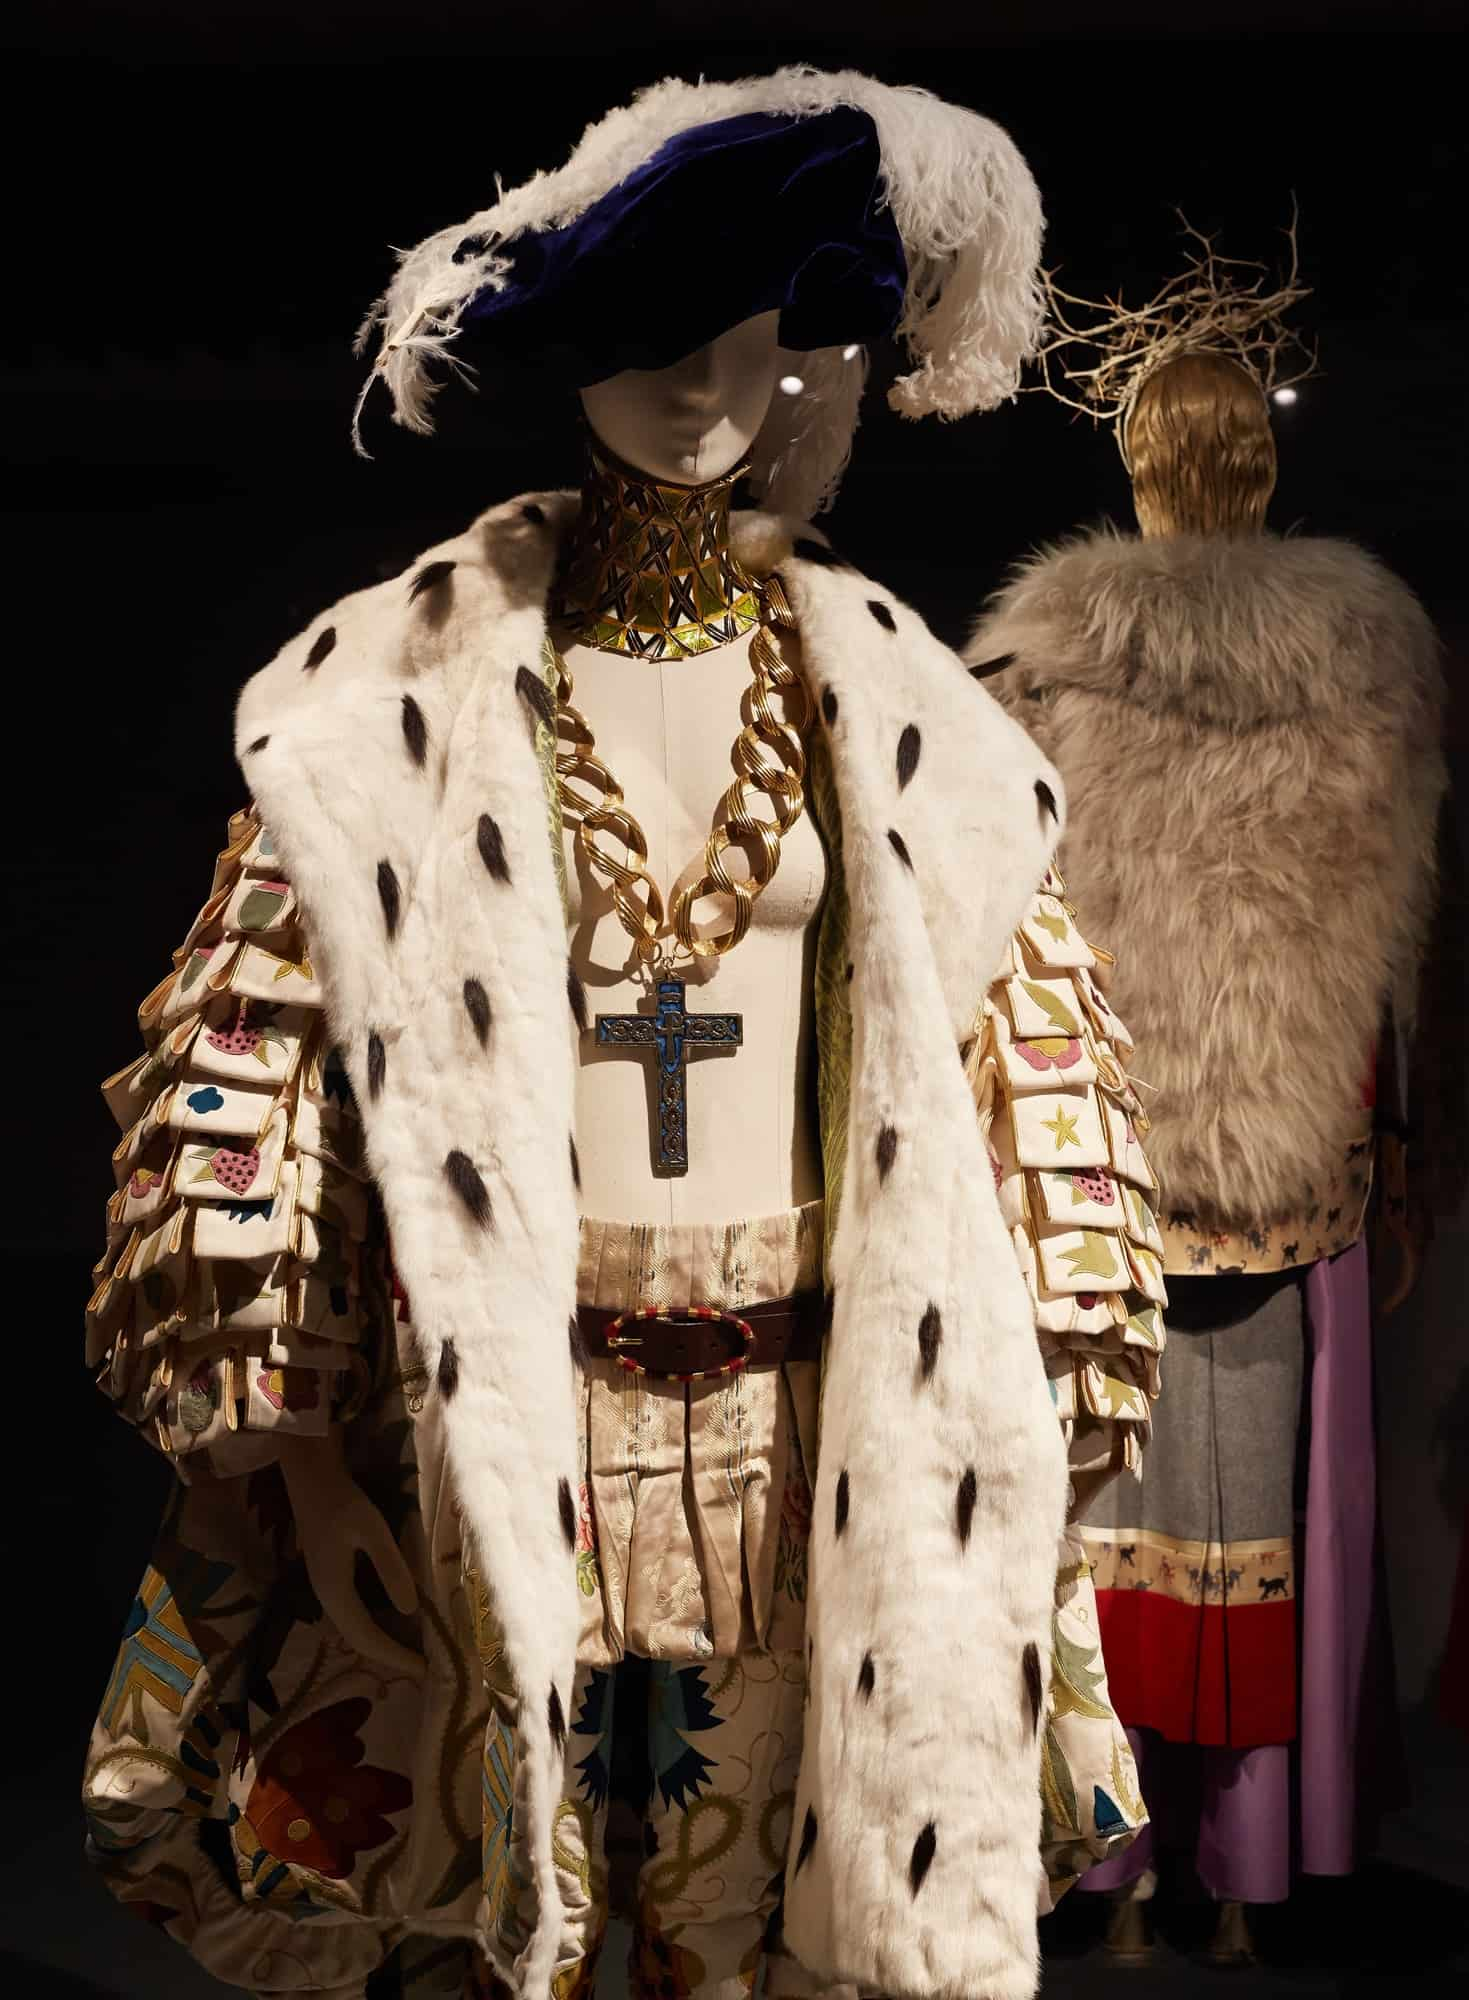 10-the-vulgar_fashion-redefined-barbican-art-gallery-2016-photo-michael-bowles_getty-images-copy